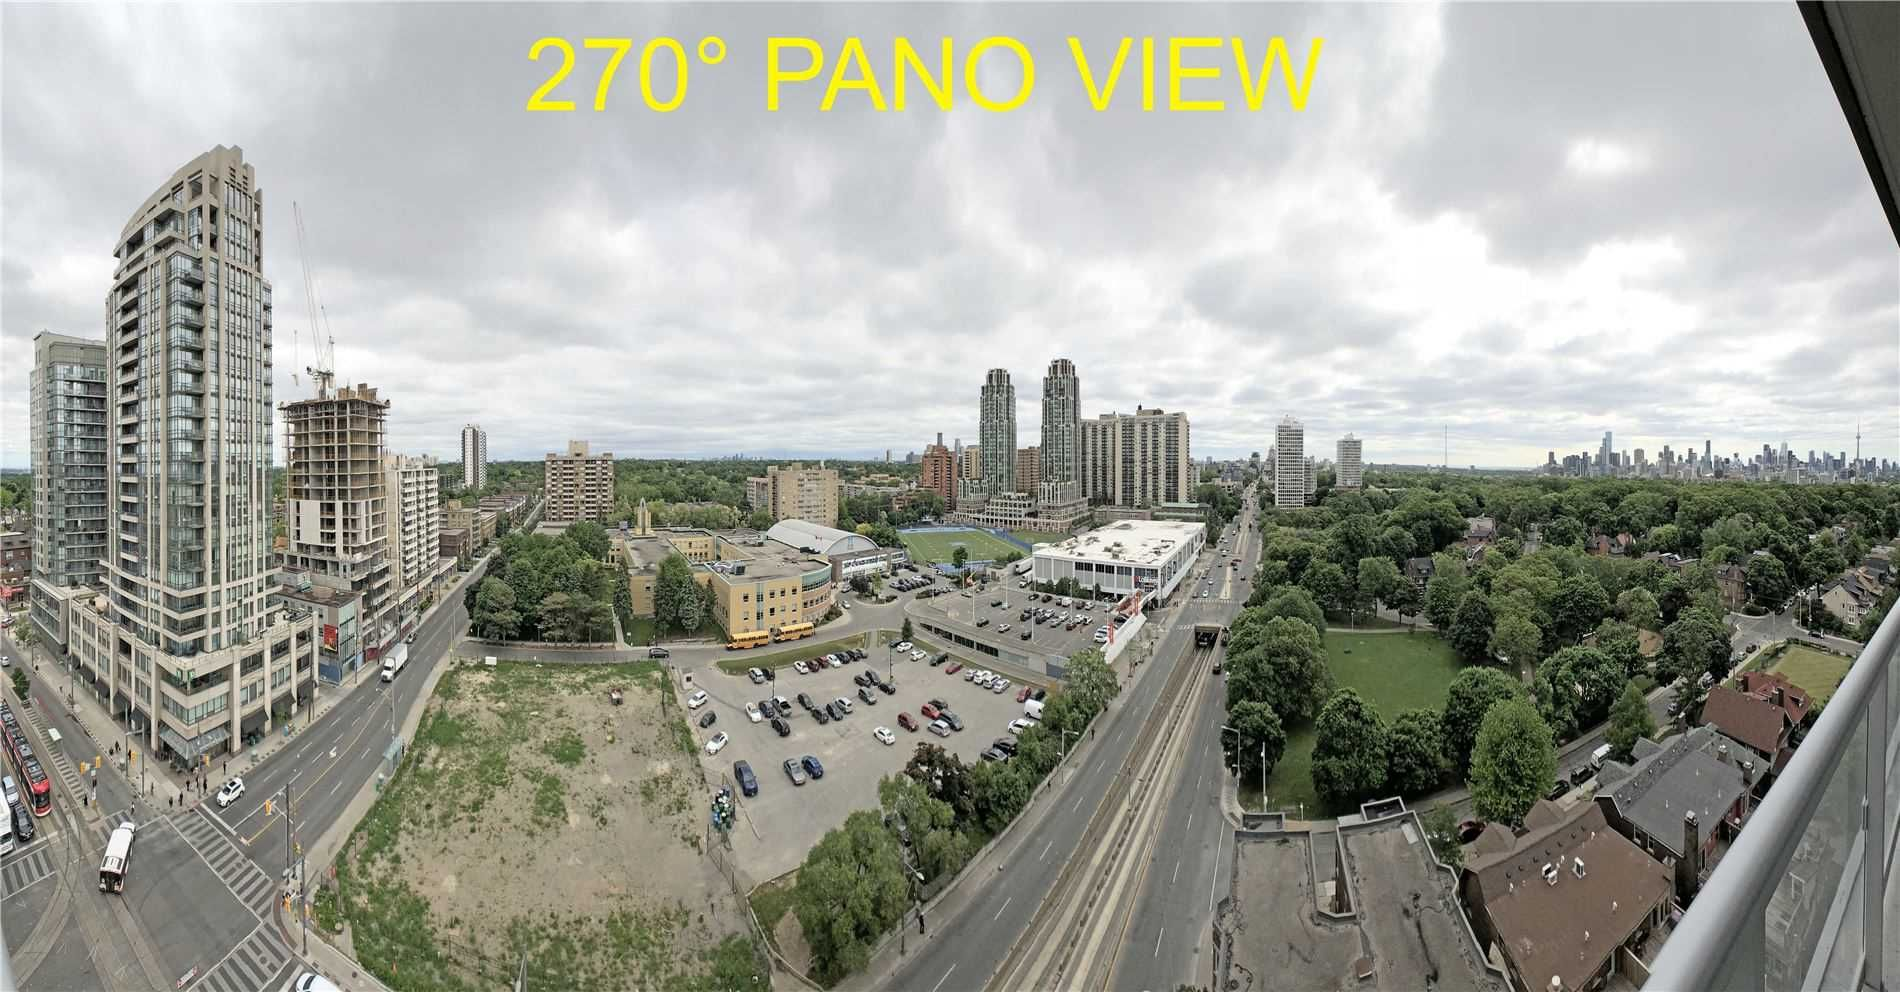 Main Photo: 1202 501 W St Clair Avenue in Toronto: Casa Loma Condo for sale (Toronto C02)  : MLS®# C5094888